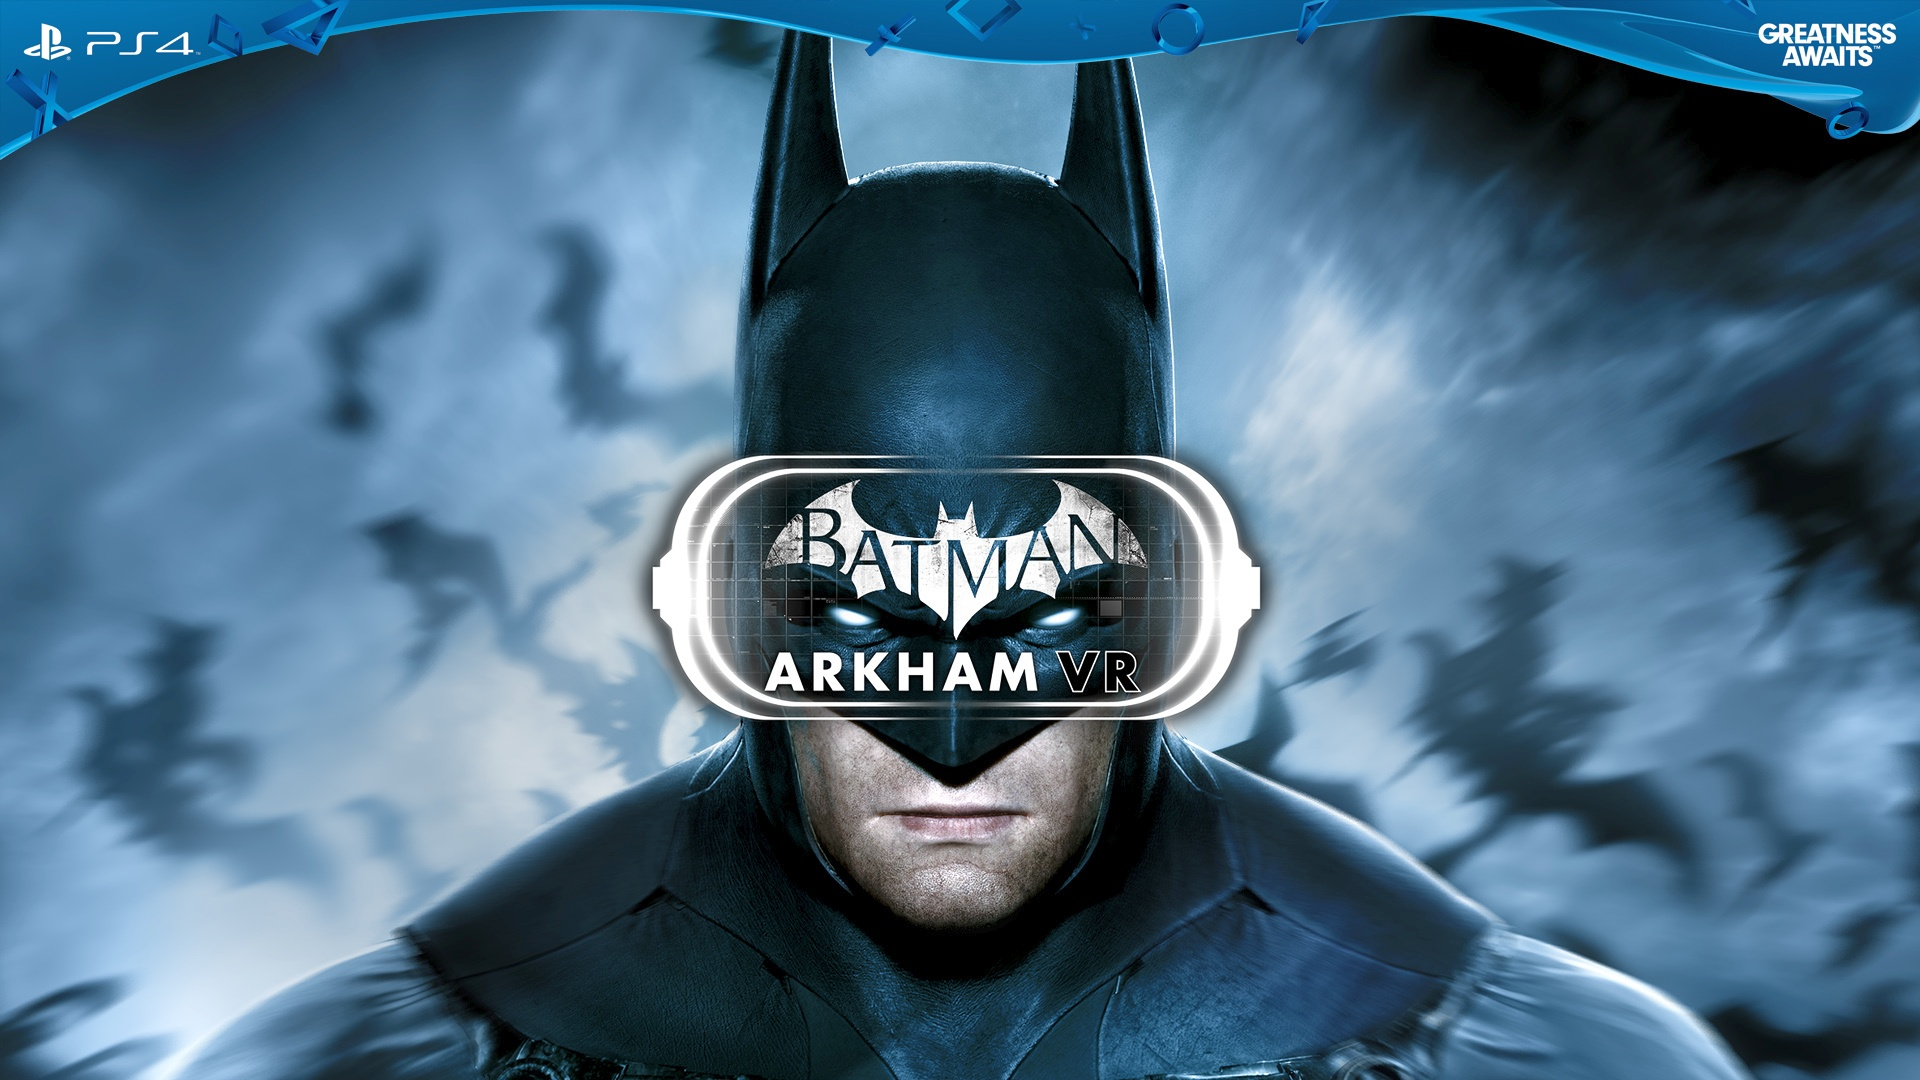 Batman: Arkham VR è ora disponibile per PlayStation